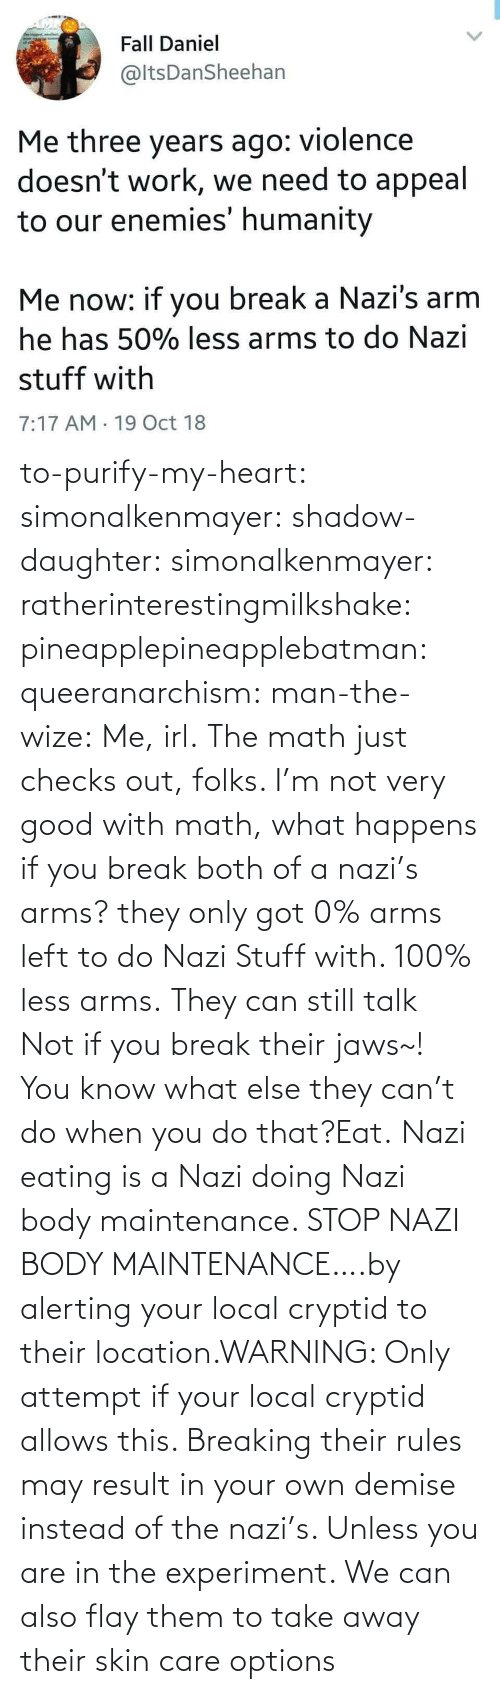 Math: to-purify-my-heart:  simonalkenmayer:  shadow-daughter: simonalkenmayer:  ratherinterestingmilkshake:  pineapplepineapplebatman:  queeranarchism:  man-the-wize: Me, irl. The math just checks out, folks.     I'm not very good with math, what happens if you break both of a nazi's arms?  they only got 0% arms left to do Nazi Stuff with. 100% less arms.  They can still talk  Not if you break their jaws~!  You know what else they can't do when you do that?Eat.   Nazi eating is a Nazi doing Nazi body maintenance. STOP NAZI BODY MAINTENANCE….by alerting your local cryptid to their location.WARNING: Only attempt if your local cryptid allows this. Breaking their rules may result in your own demise instead of the nazi's. Unless you are in the experiment.    We can also flay them to take away their skin care options